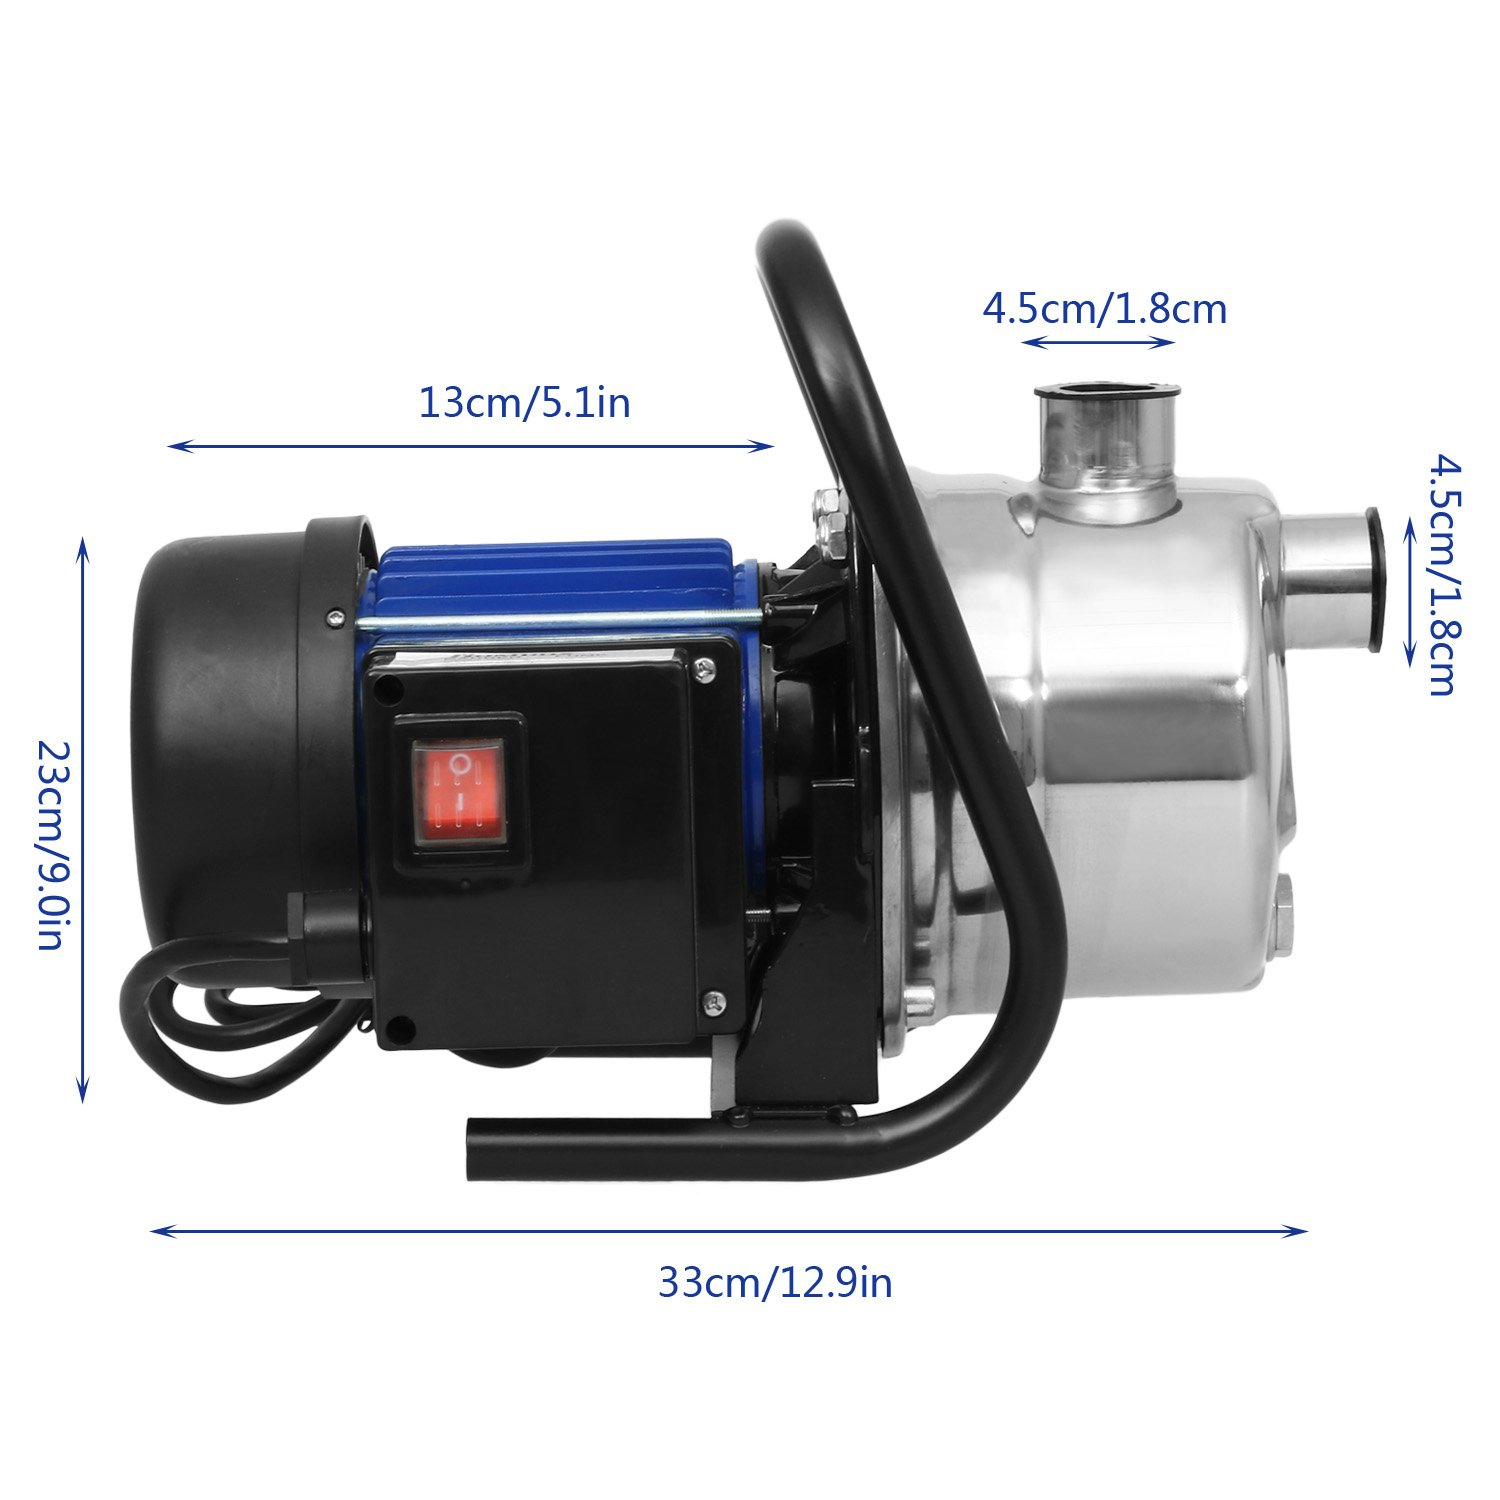 1.6HP Booster Pump Stainless Shallow Well Pump, Automatic ON/OFF for Home Garden Irrigation Water Supply (US Stock) (1.6HP-Blue)